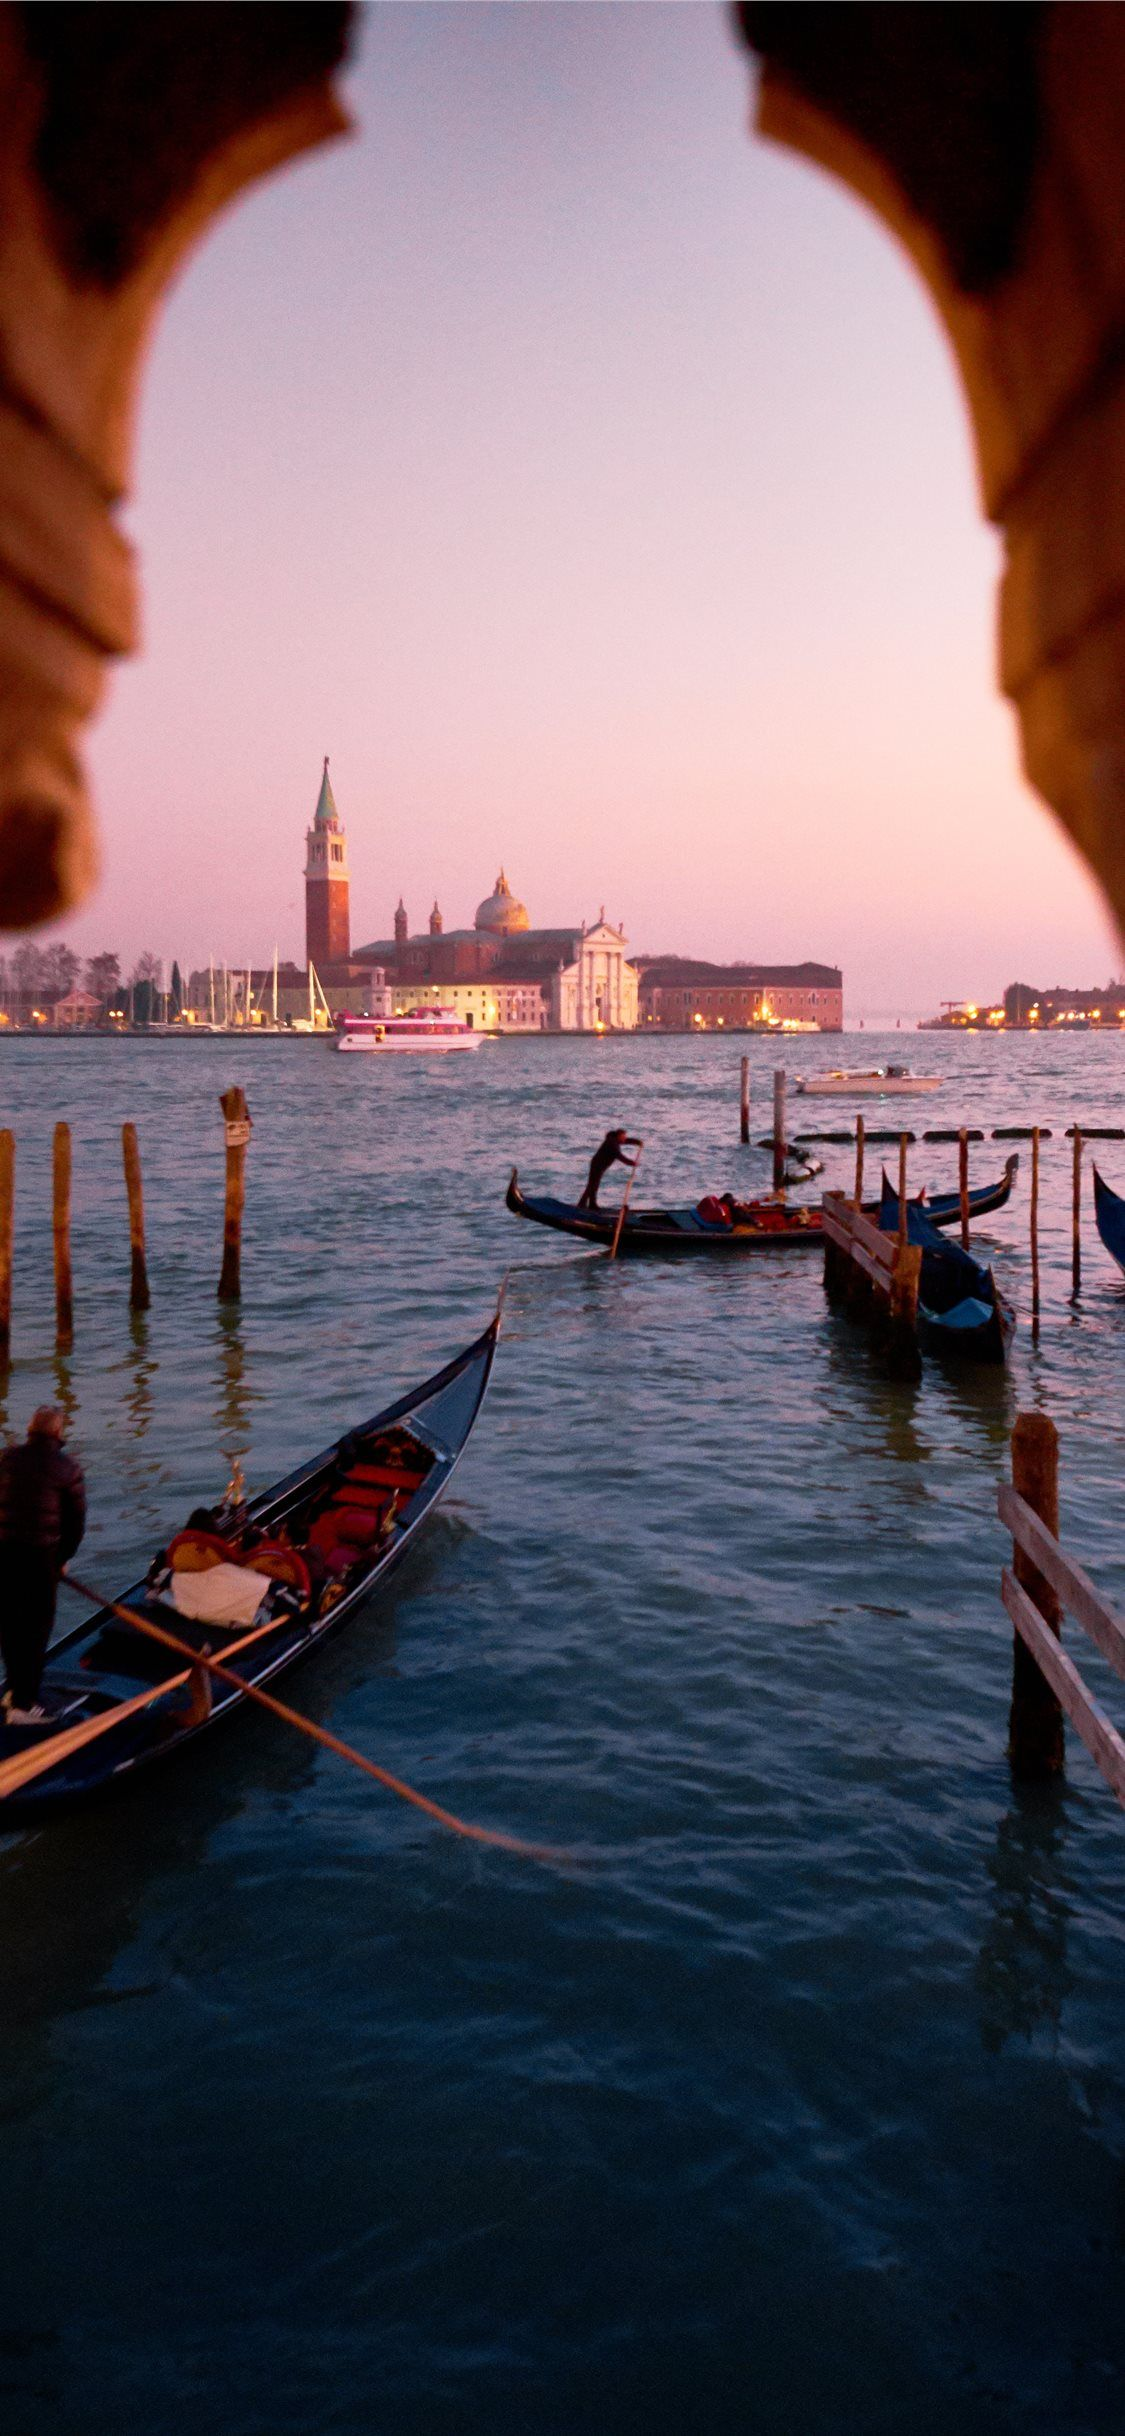 Free download the Grand Canal Venice Italy wallpaper